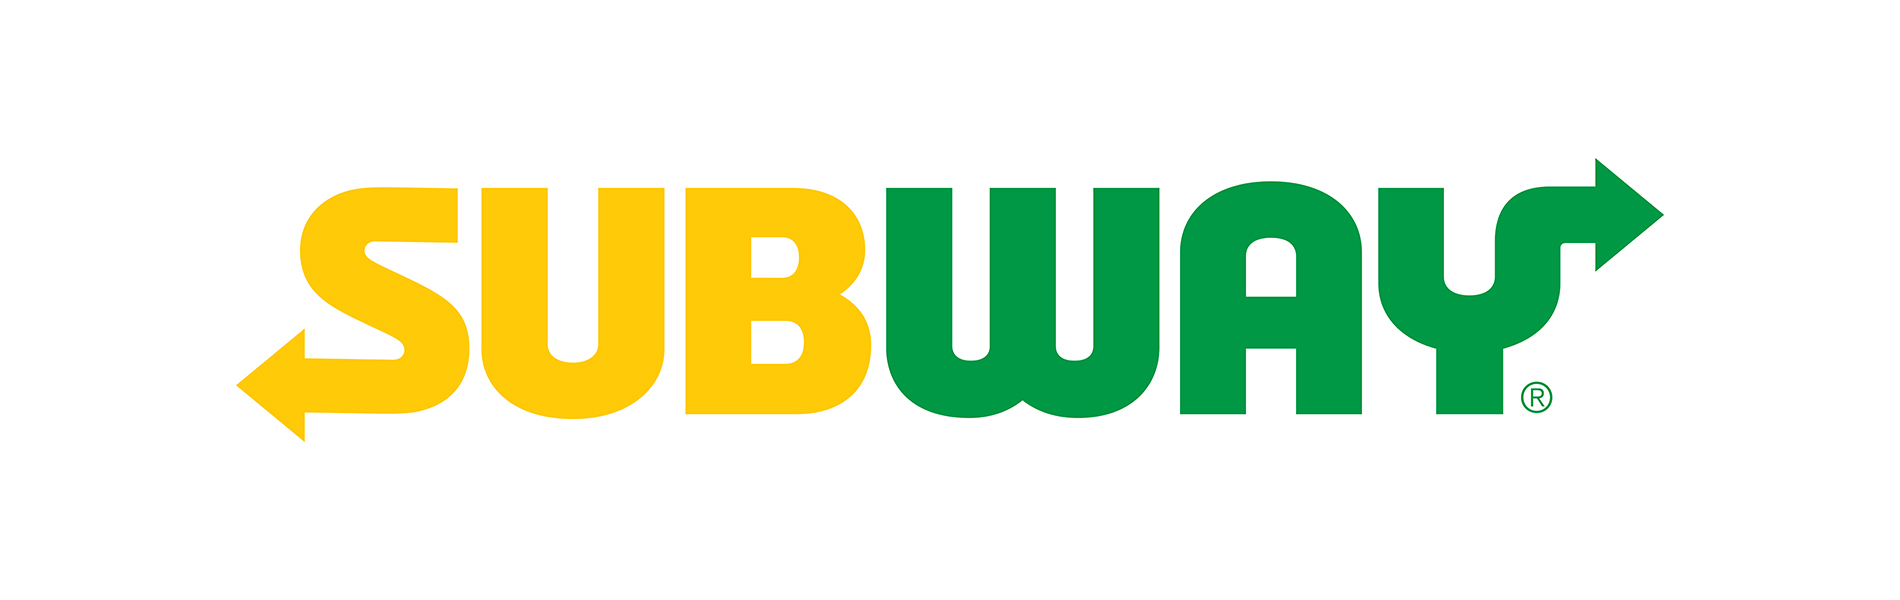 novo logo subway